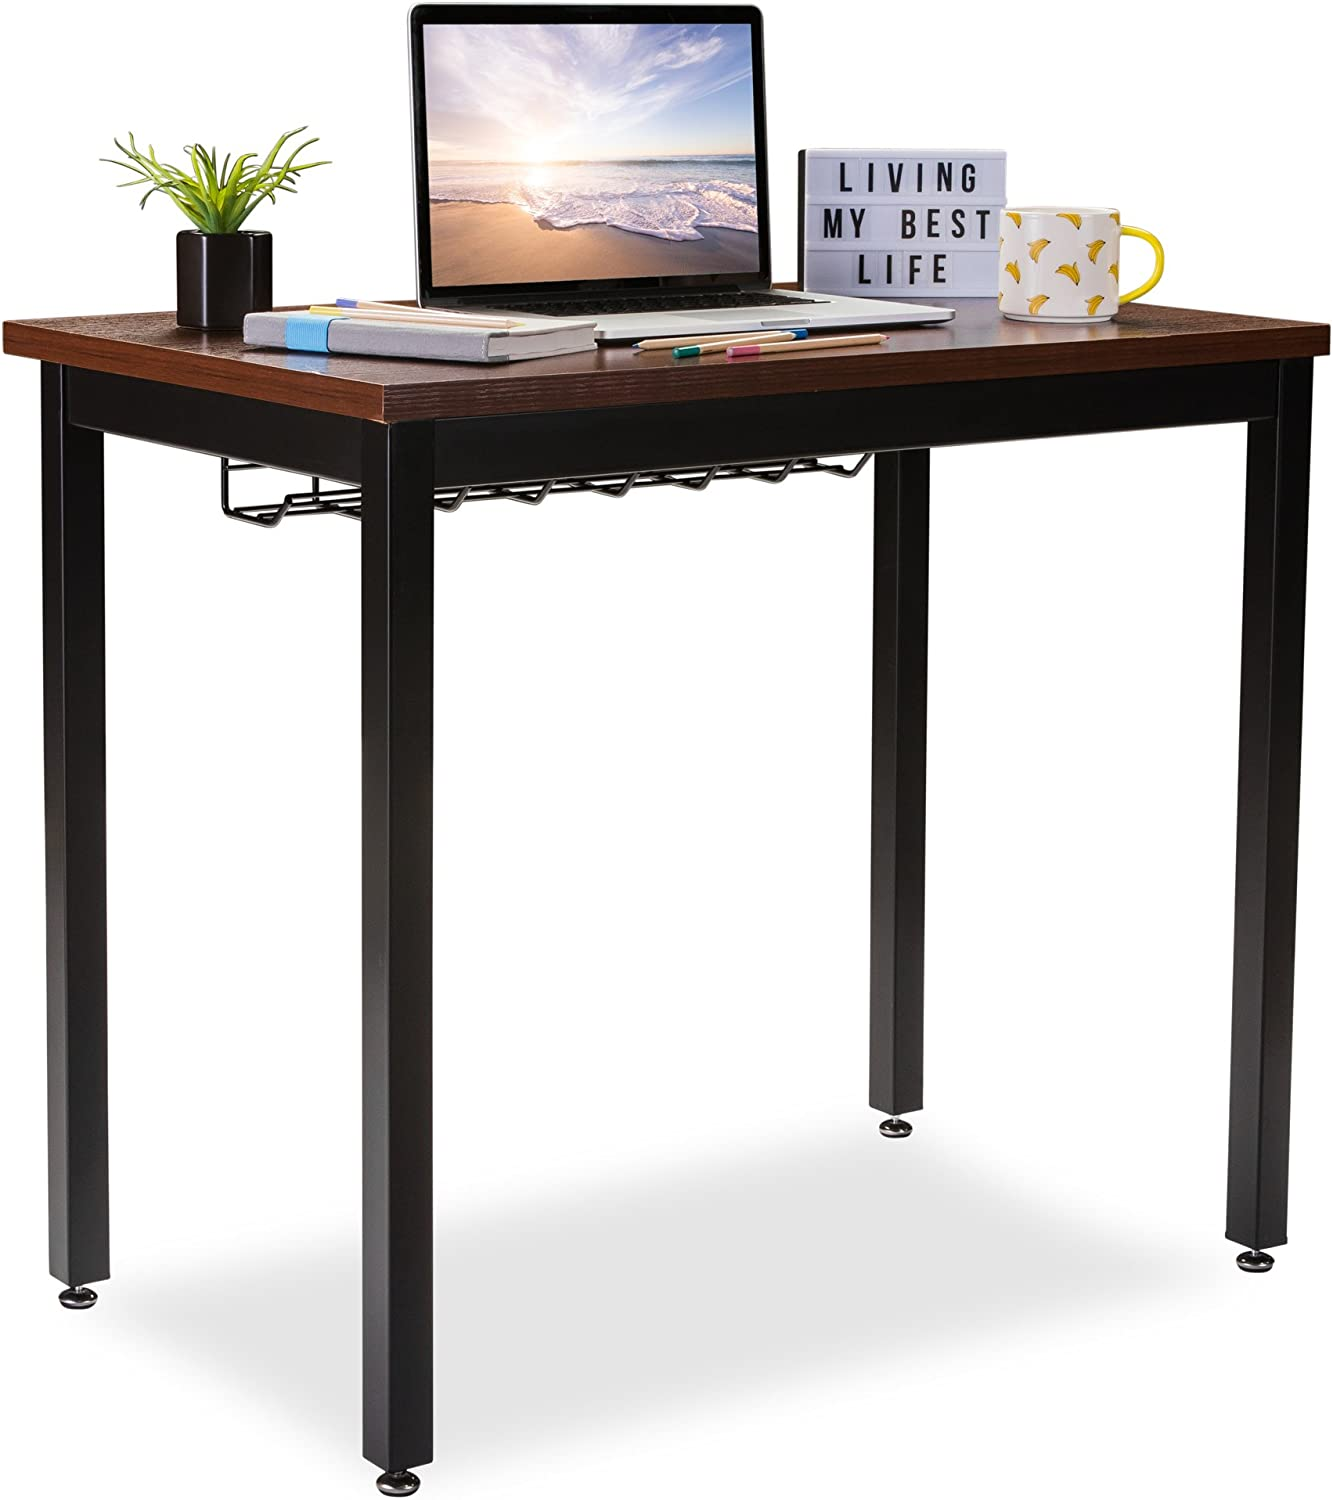 """Small Computer Desk for Home Topics on TV Luxury goods Office Cable w Length Or Table 36"""""""